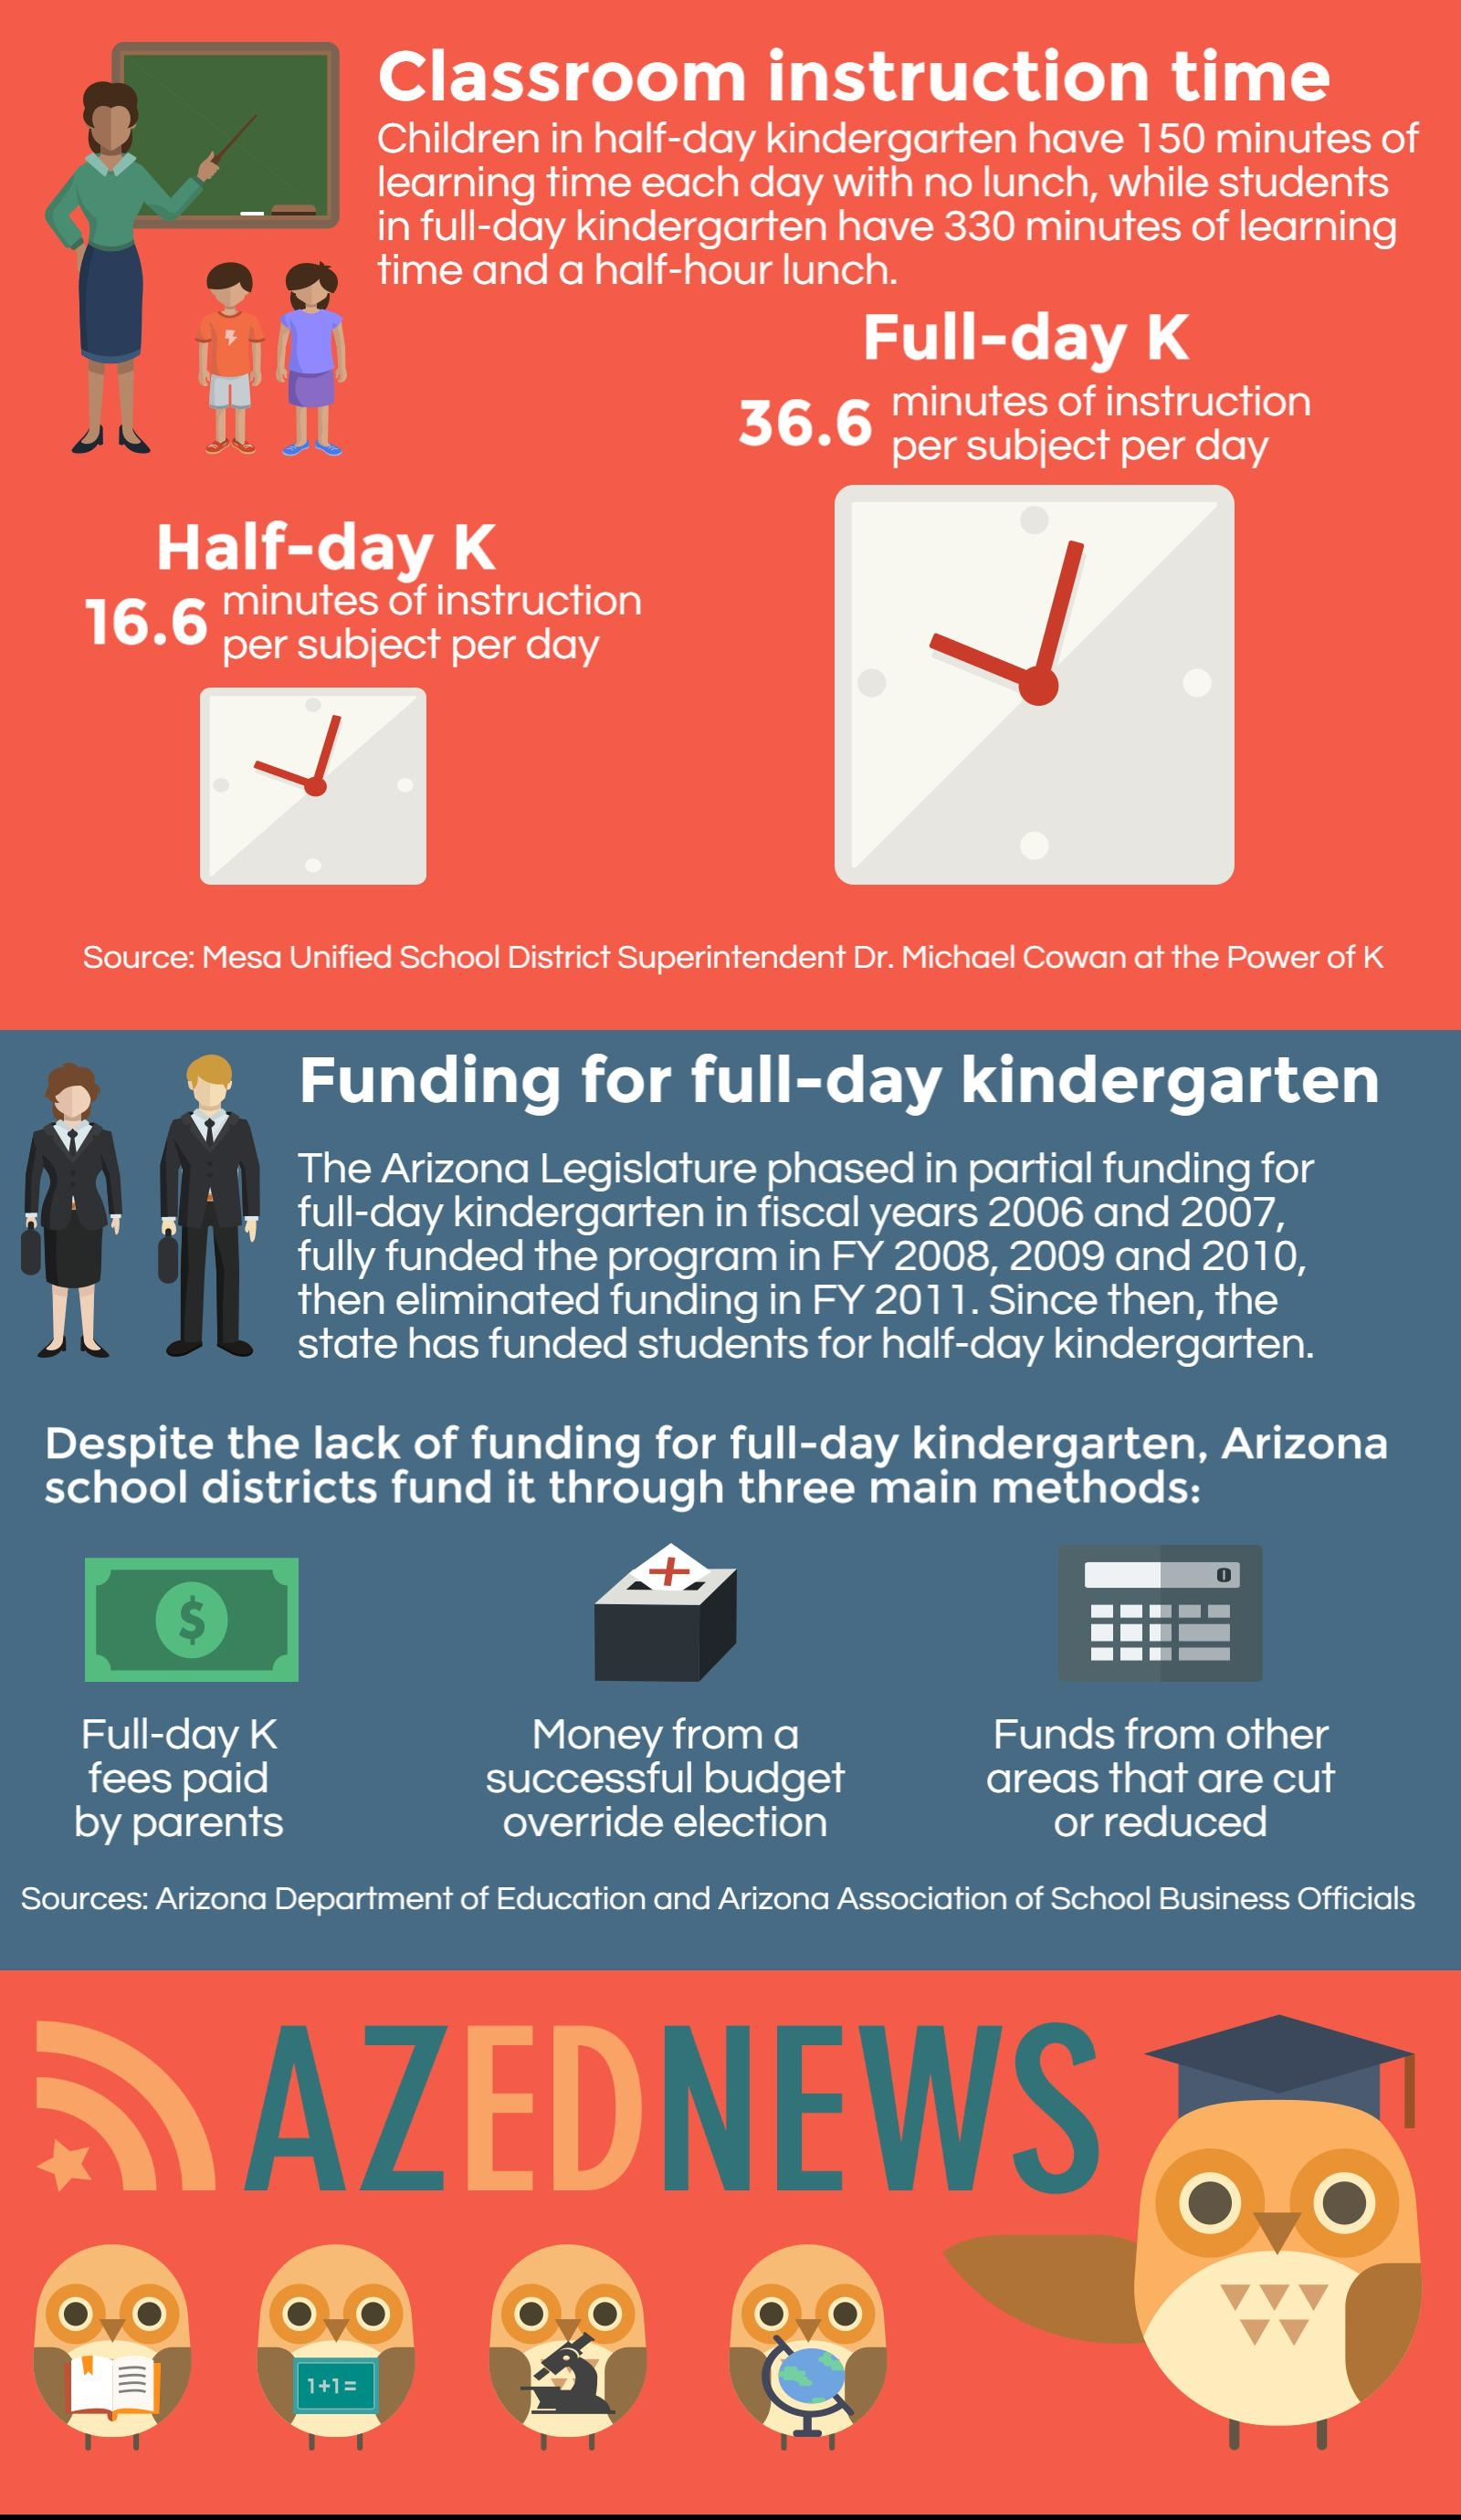 Leaders say full-day kindergarten is key to early literacy (+ Infographic) AZEdNewsKindergartenTimeAndMoneyInfographic